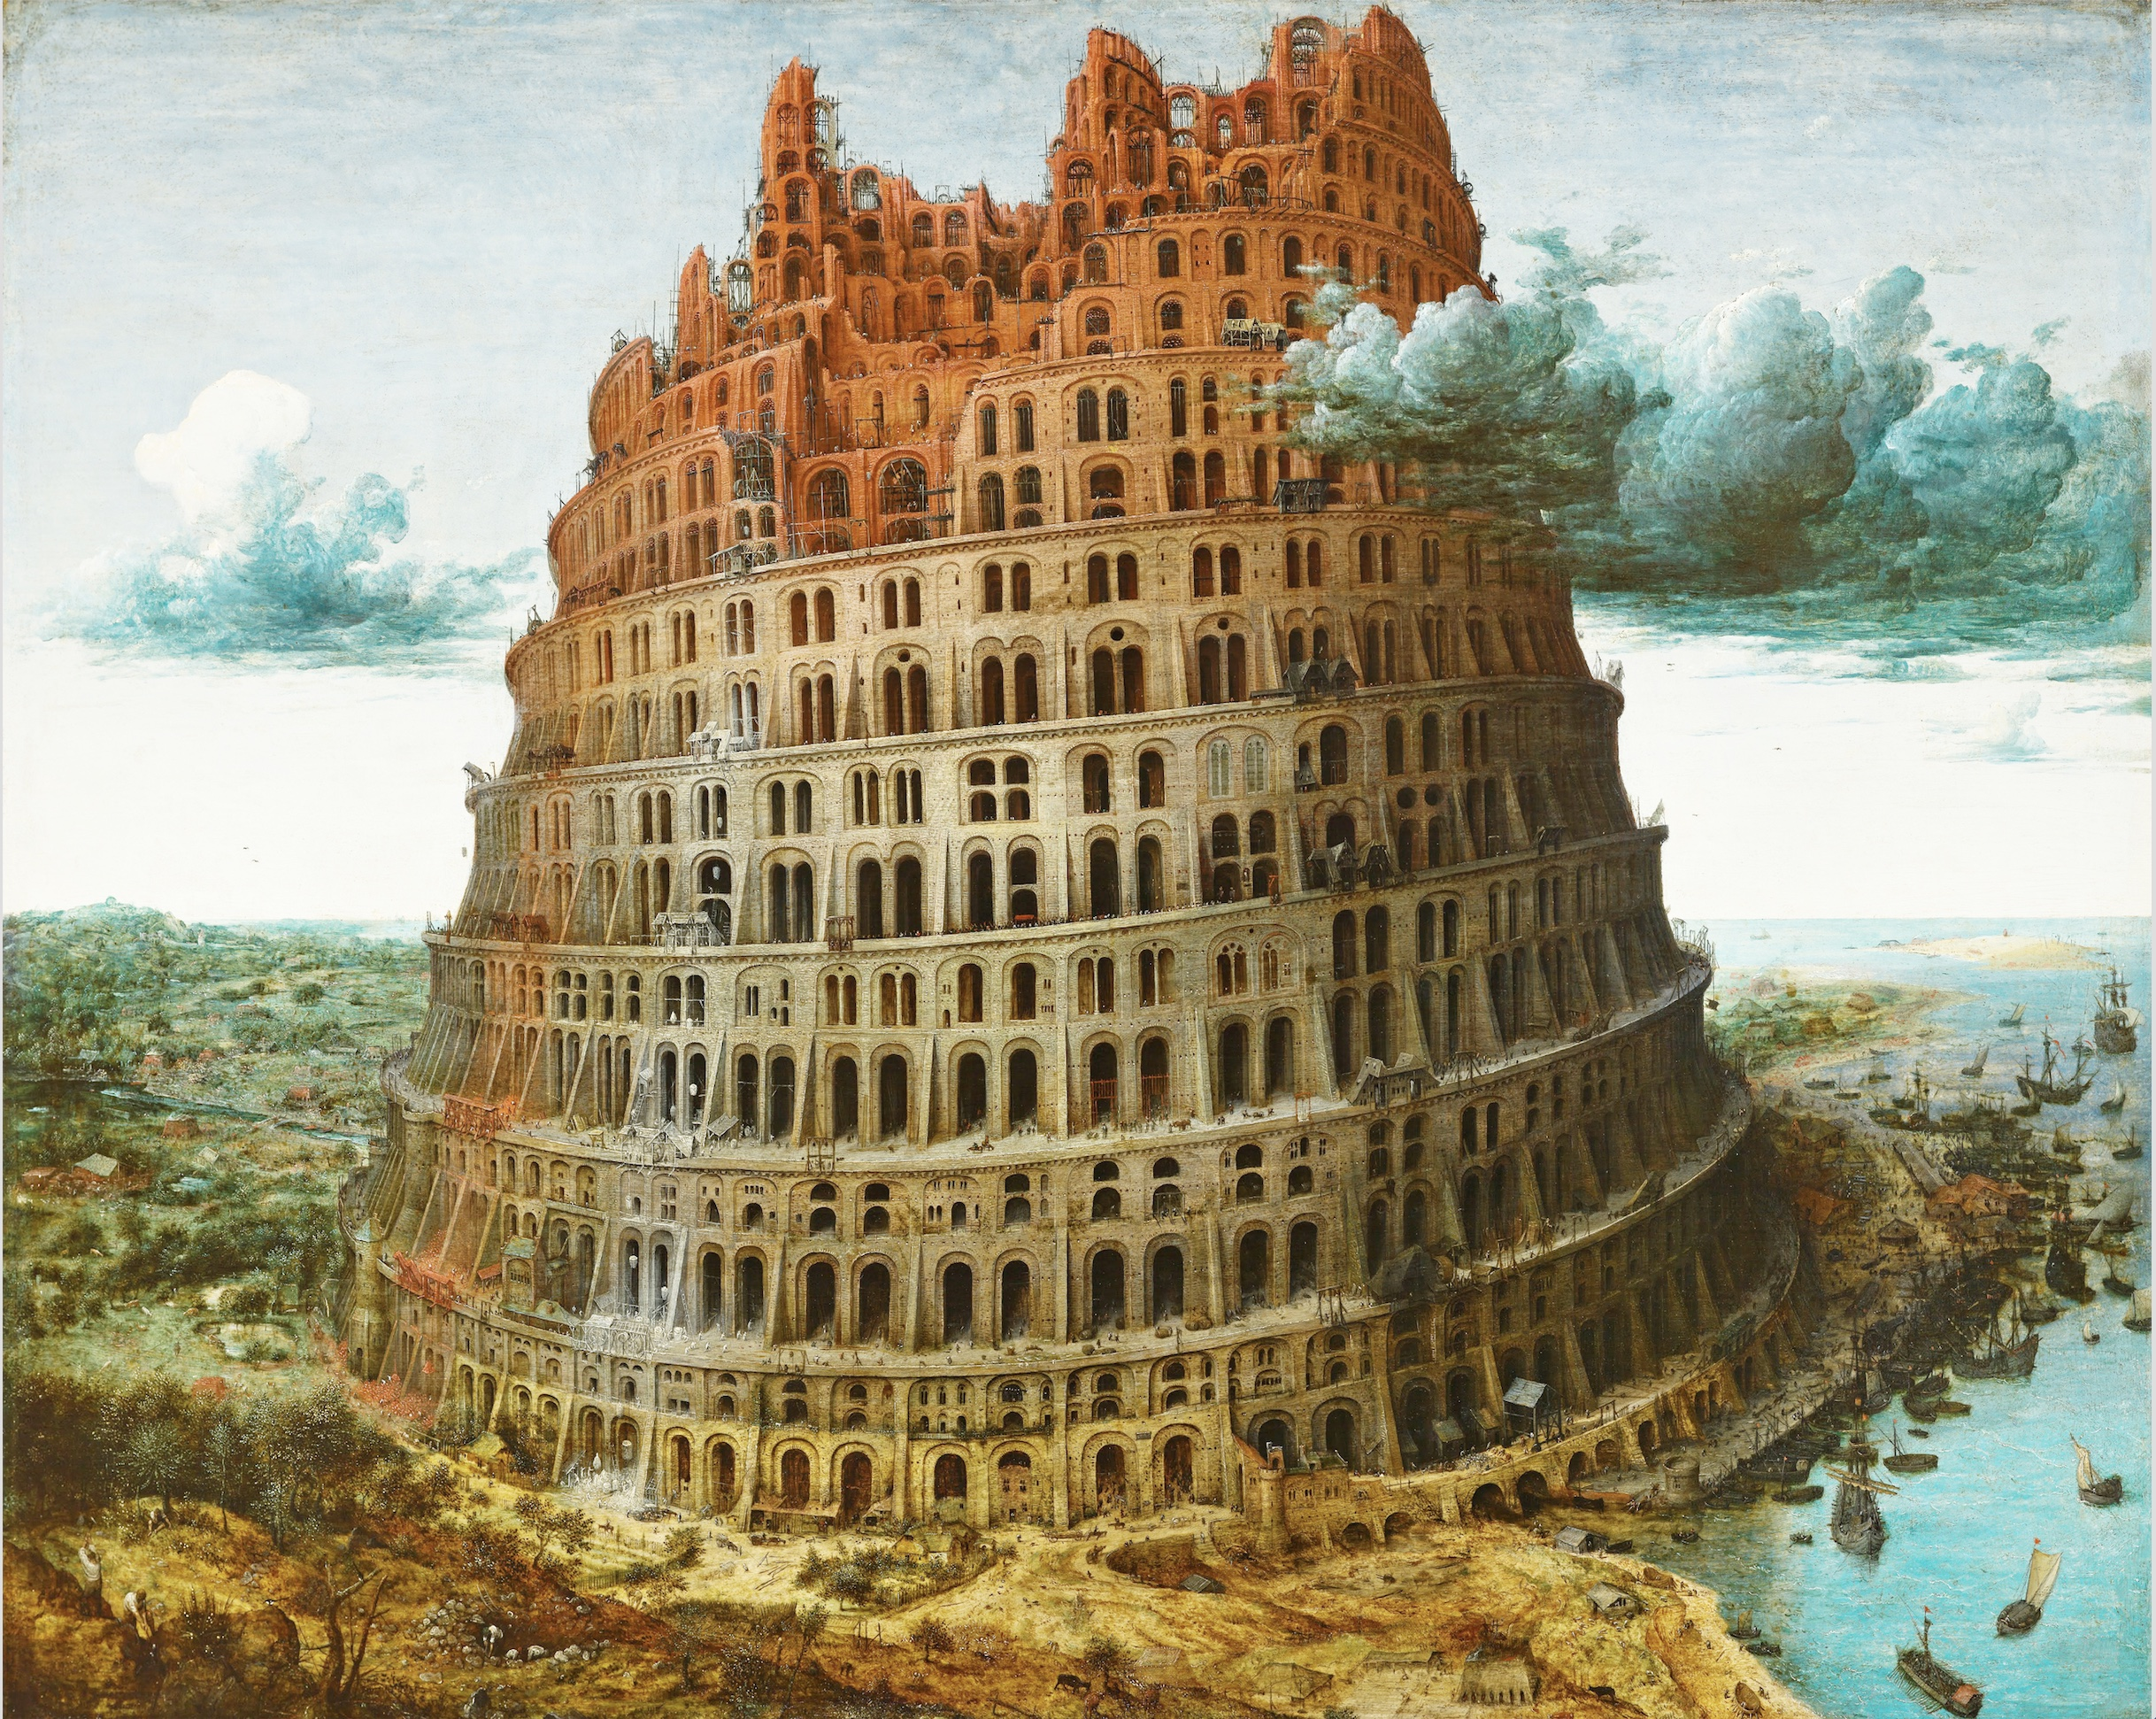 bridge of babel (2009), babel festival, amsterdam